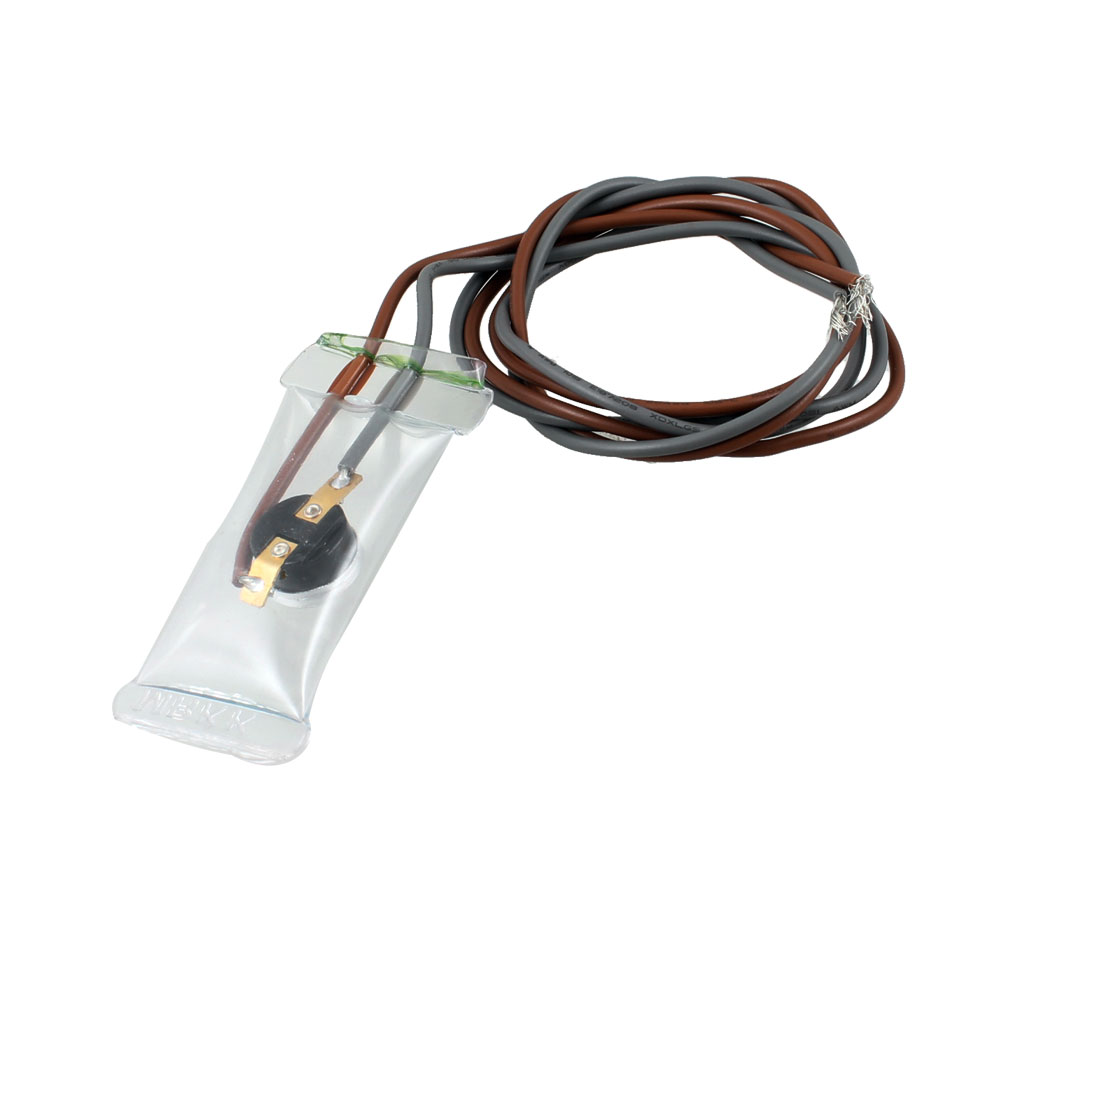 KSD-3008 250VAC 5A 2 Wire -4 Celsius Switch Refrigerator Defrost Thermostat